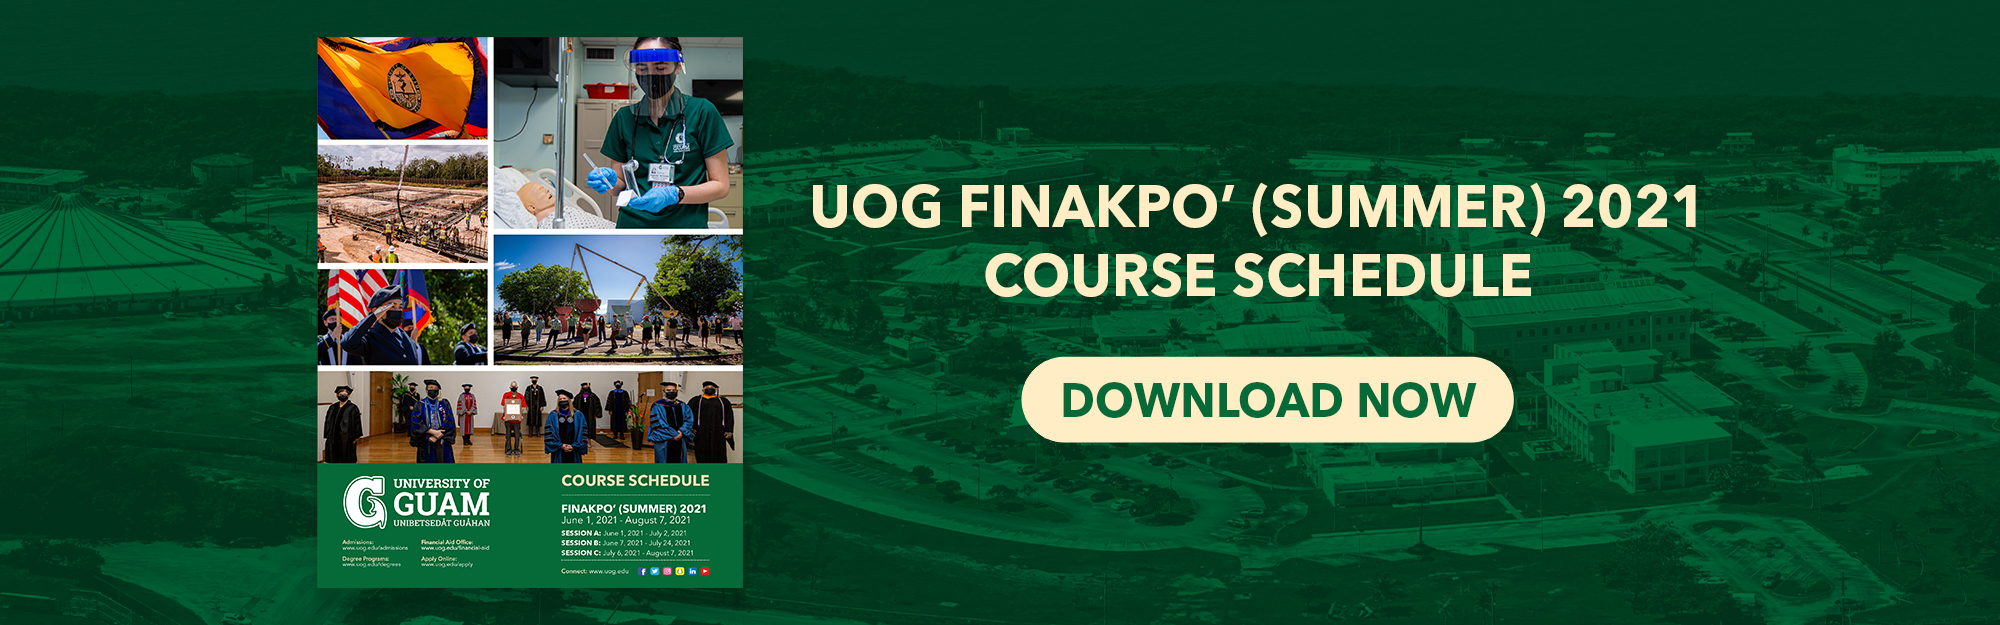 Click here to download the Finakpo' (Summer) 2021 Course Schedule